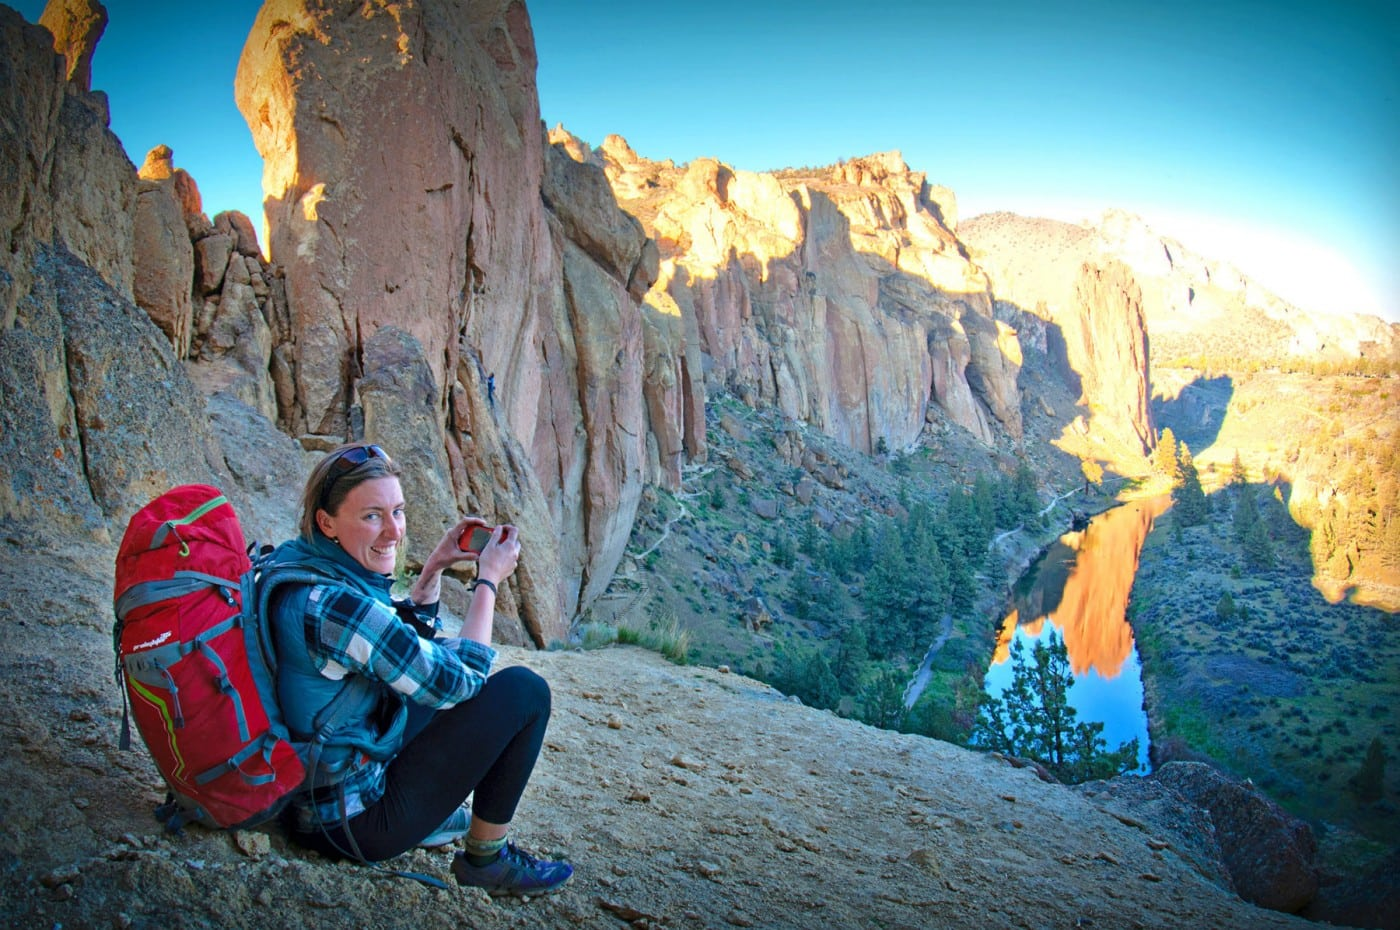 Smith Rock Climbing Live Your Dream Art Project